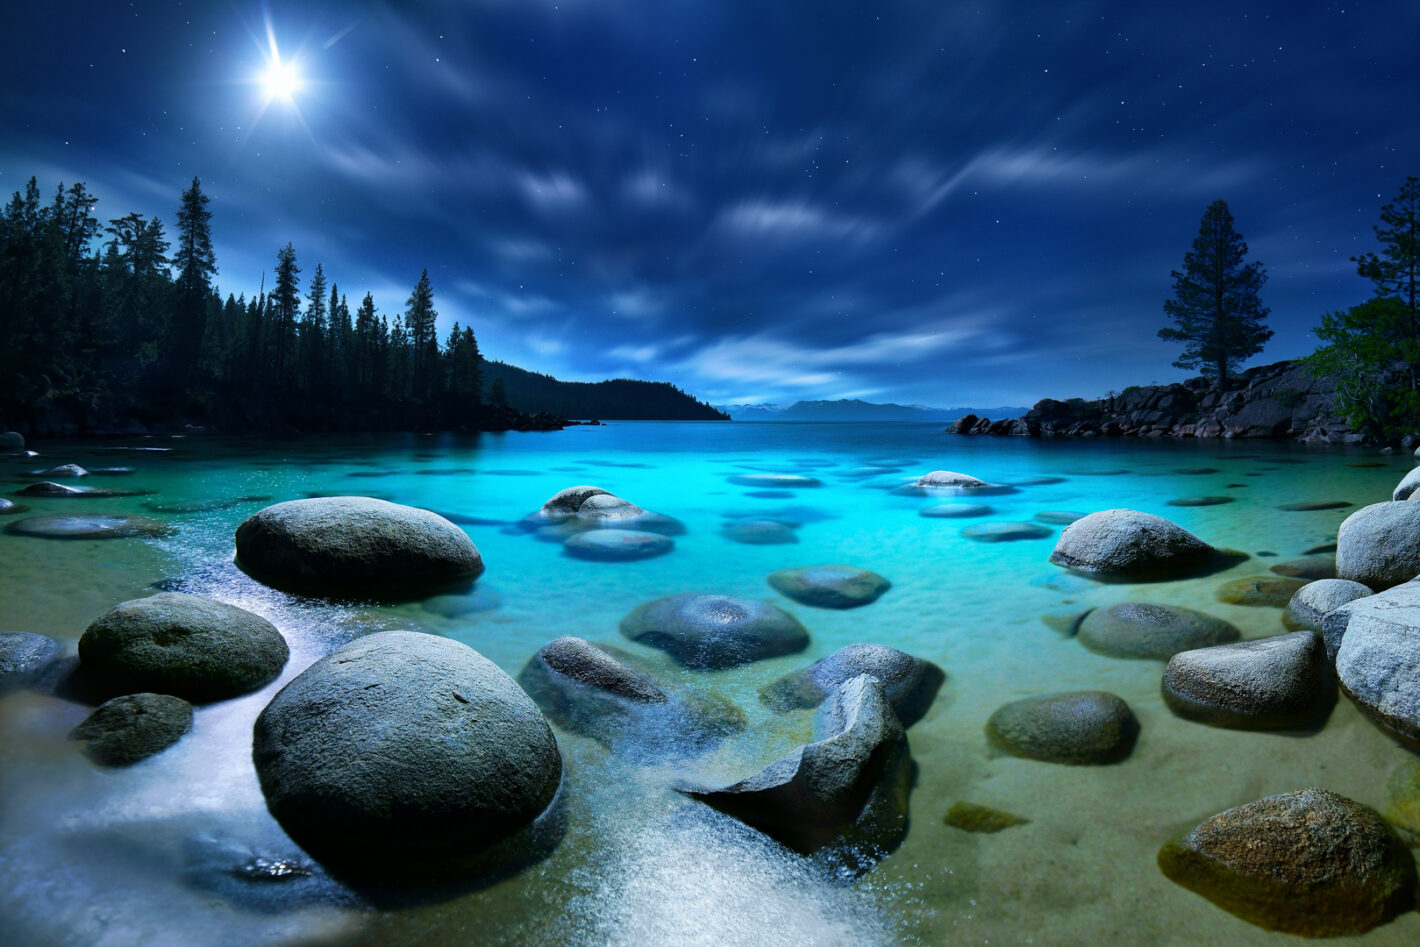 Luminosity, Lake Tahoe, Nevada, CA, USA Sony a7r2, 14mm, 20sec, 1000 iso, f2.8